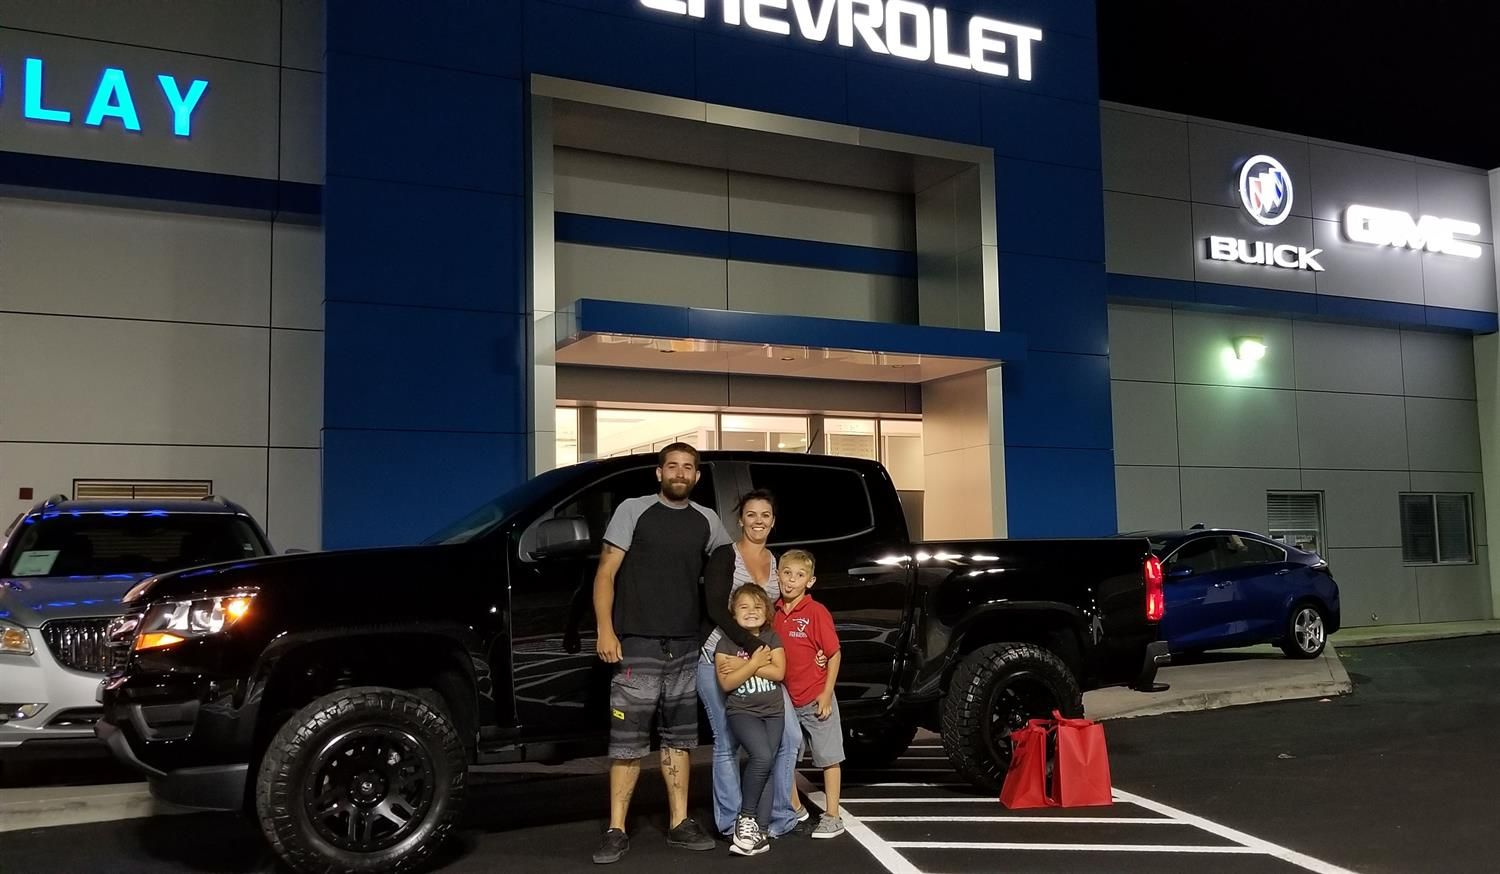 Jacqueline And Jerry Wishing You Many Miles Of Smiles In Your 2018 Chevrolet Colorado All The Best Findlay Chevy Buick Chevrolet Colorado Buick Gmc Chevy